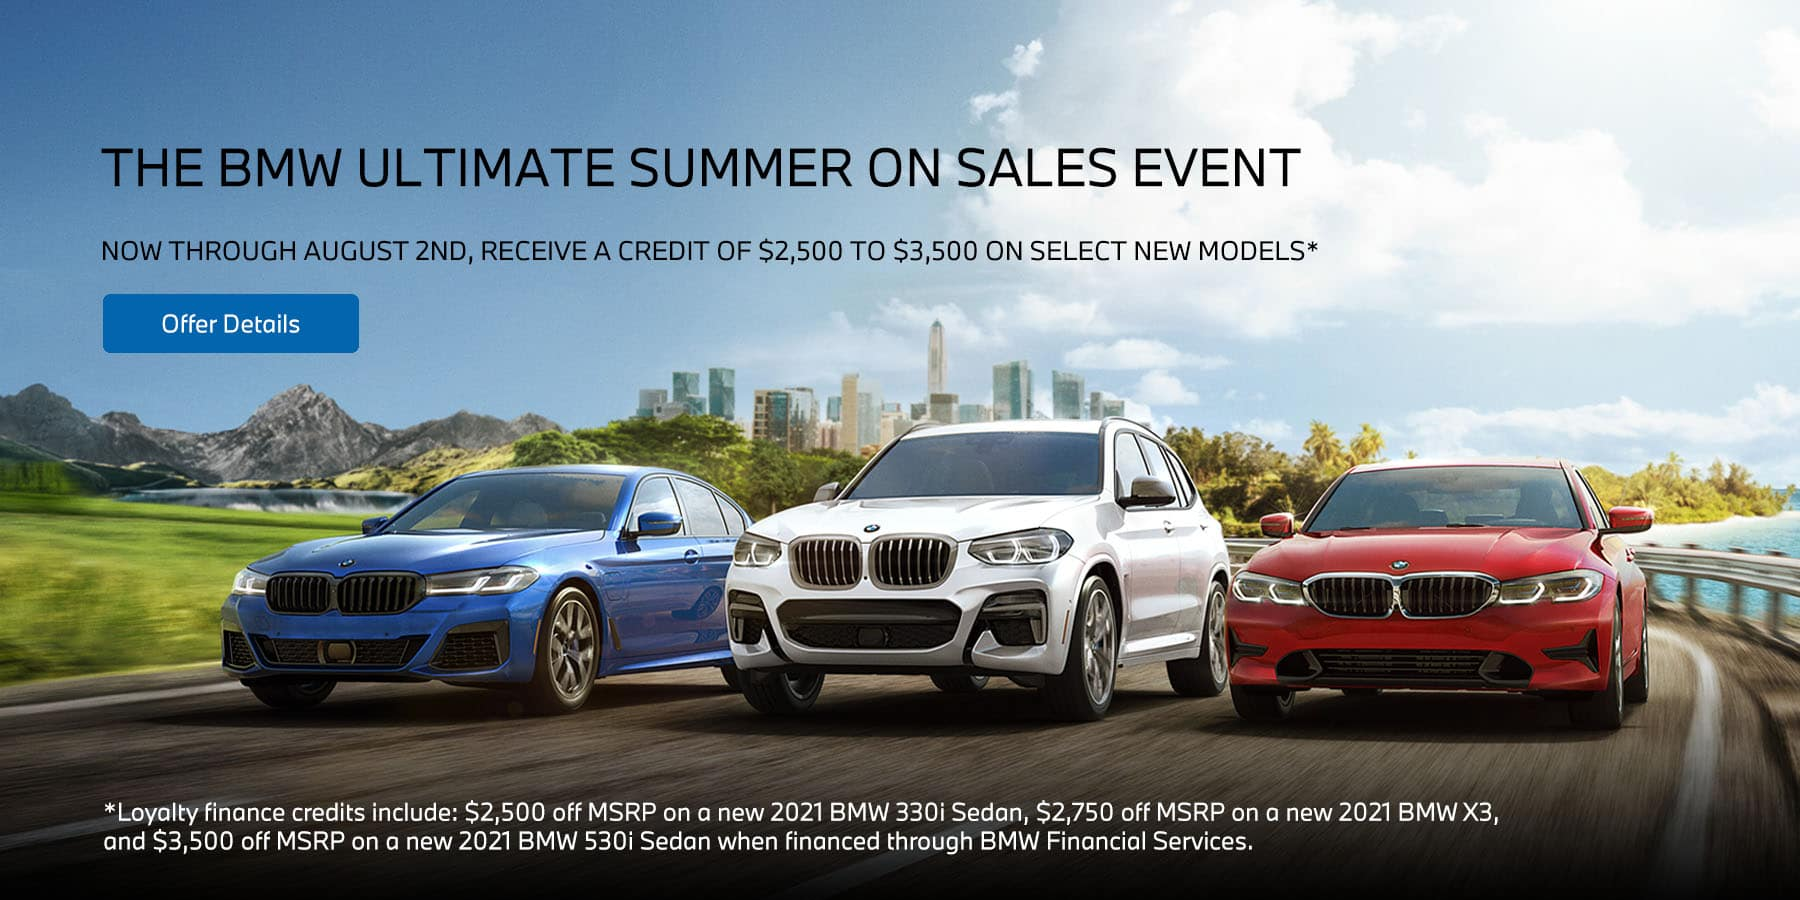 The BMW Ultimate Summer On Sales Event